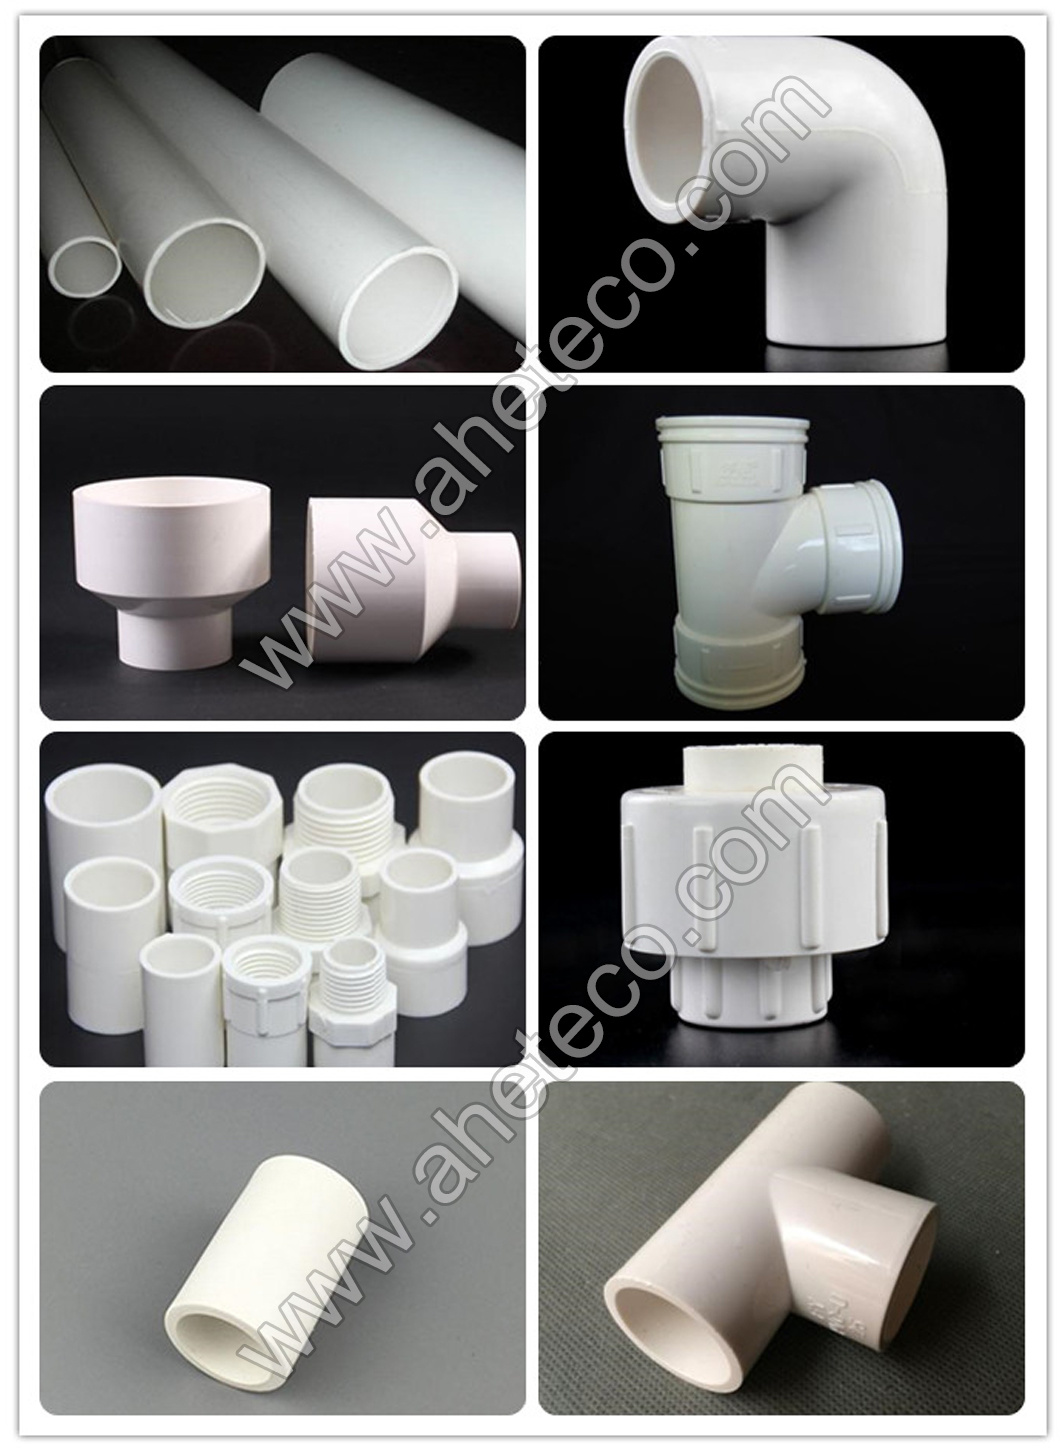 Sch40 ASTM 2466 PVC PPR Pipe Fitting 90 Degree Elbow